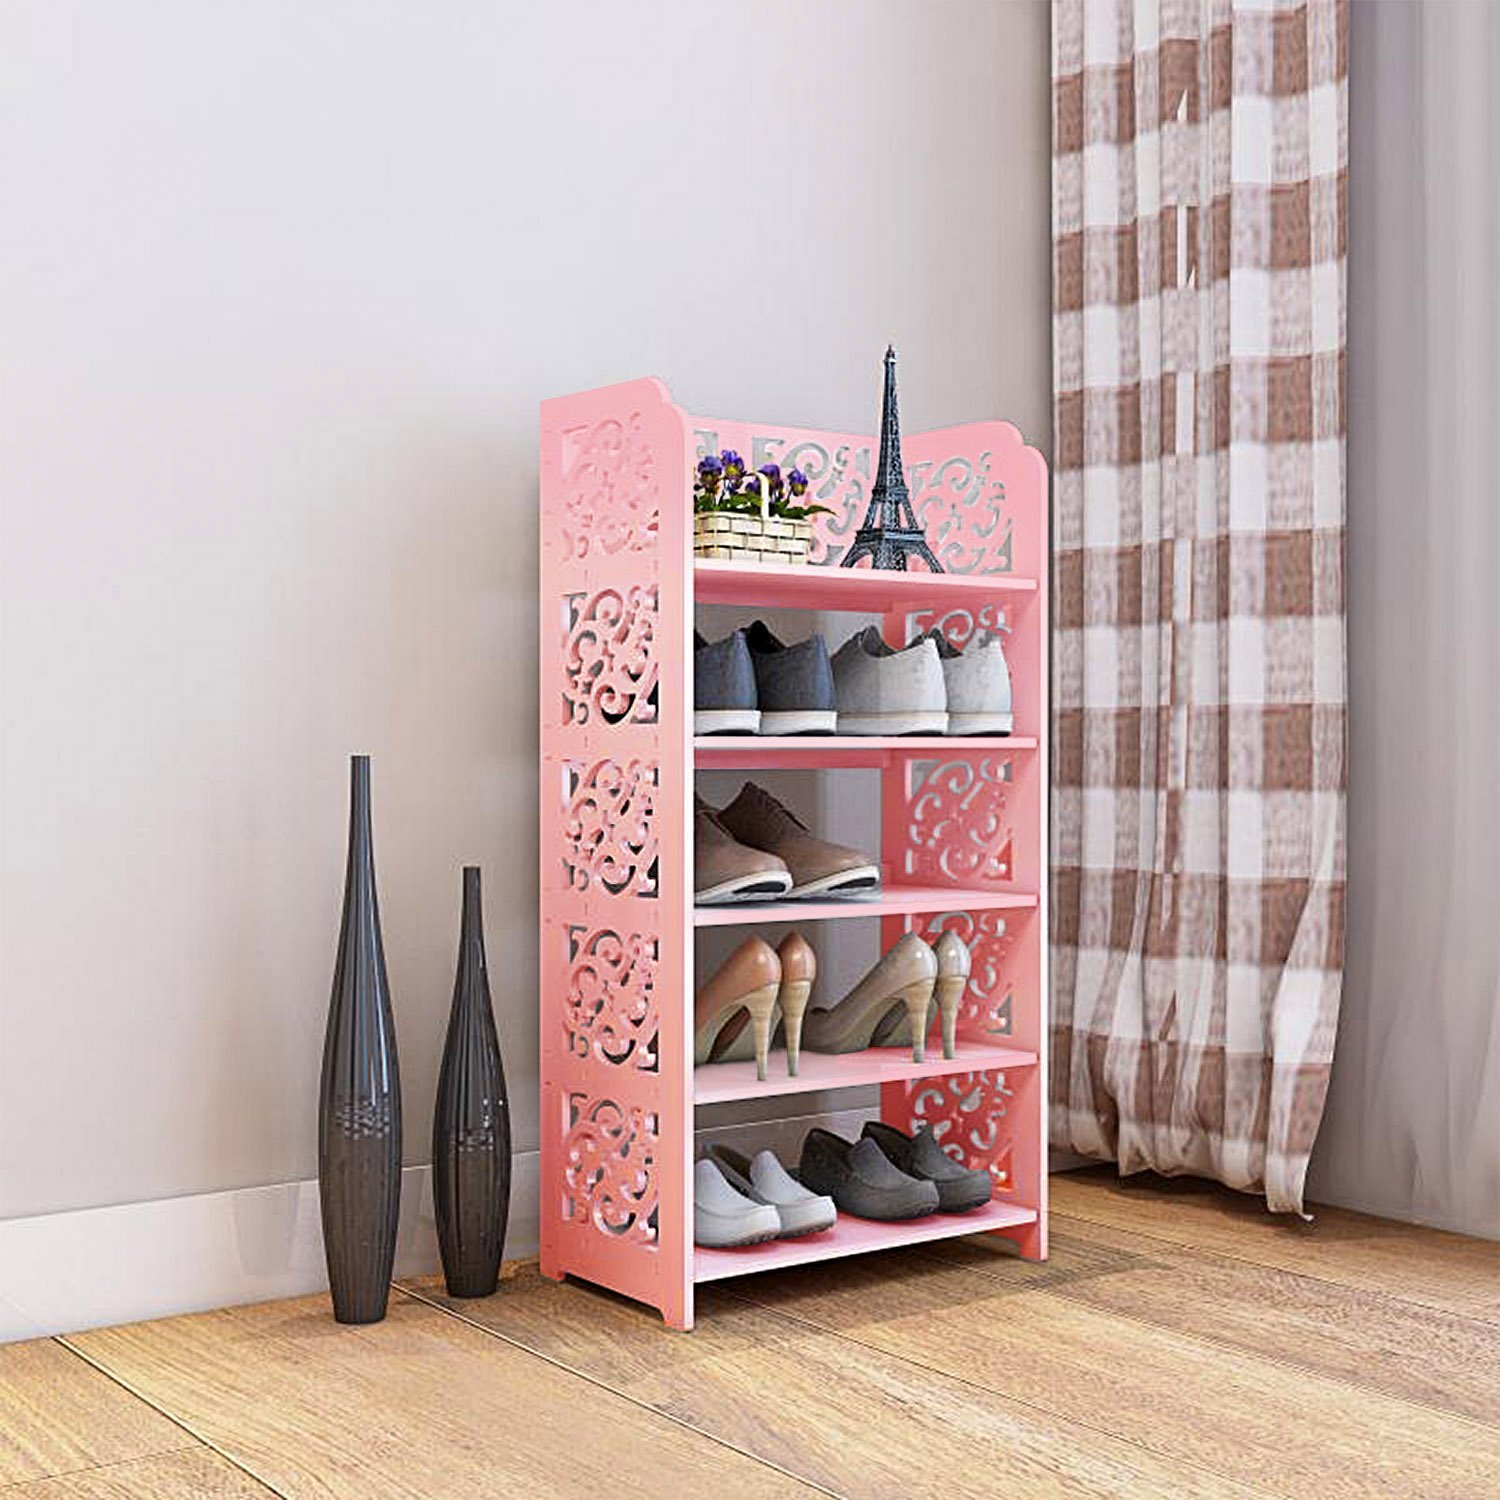 DL furniture - 5 tier WPC Shoe Rack / Shoe Storage Stackable Shelves Free Standing Shoe Racks - Pink